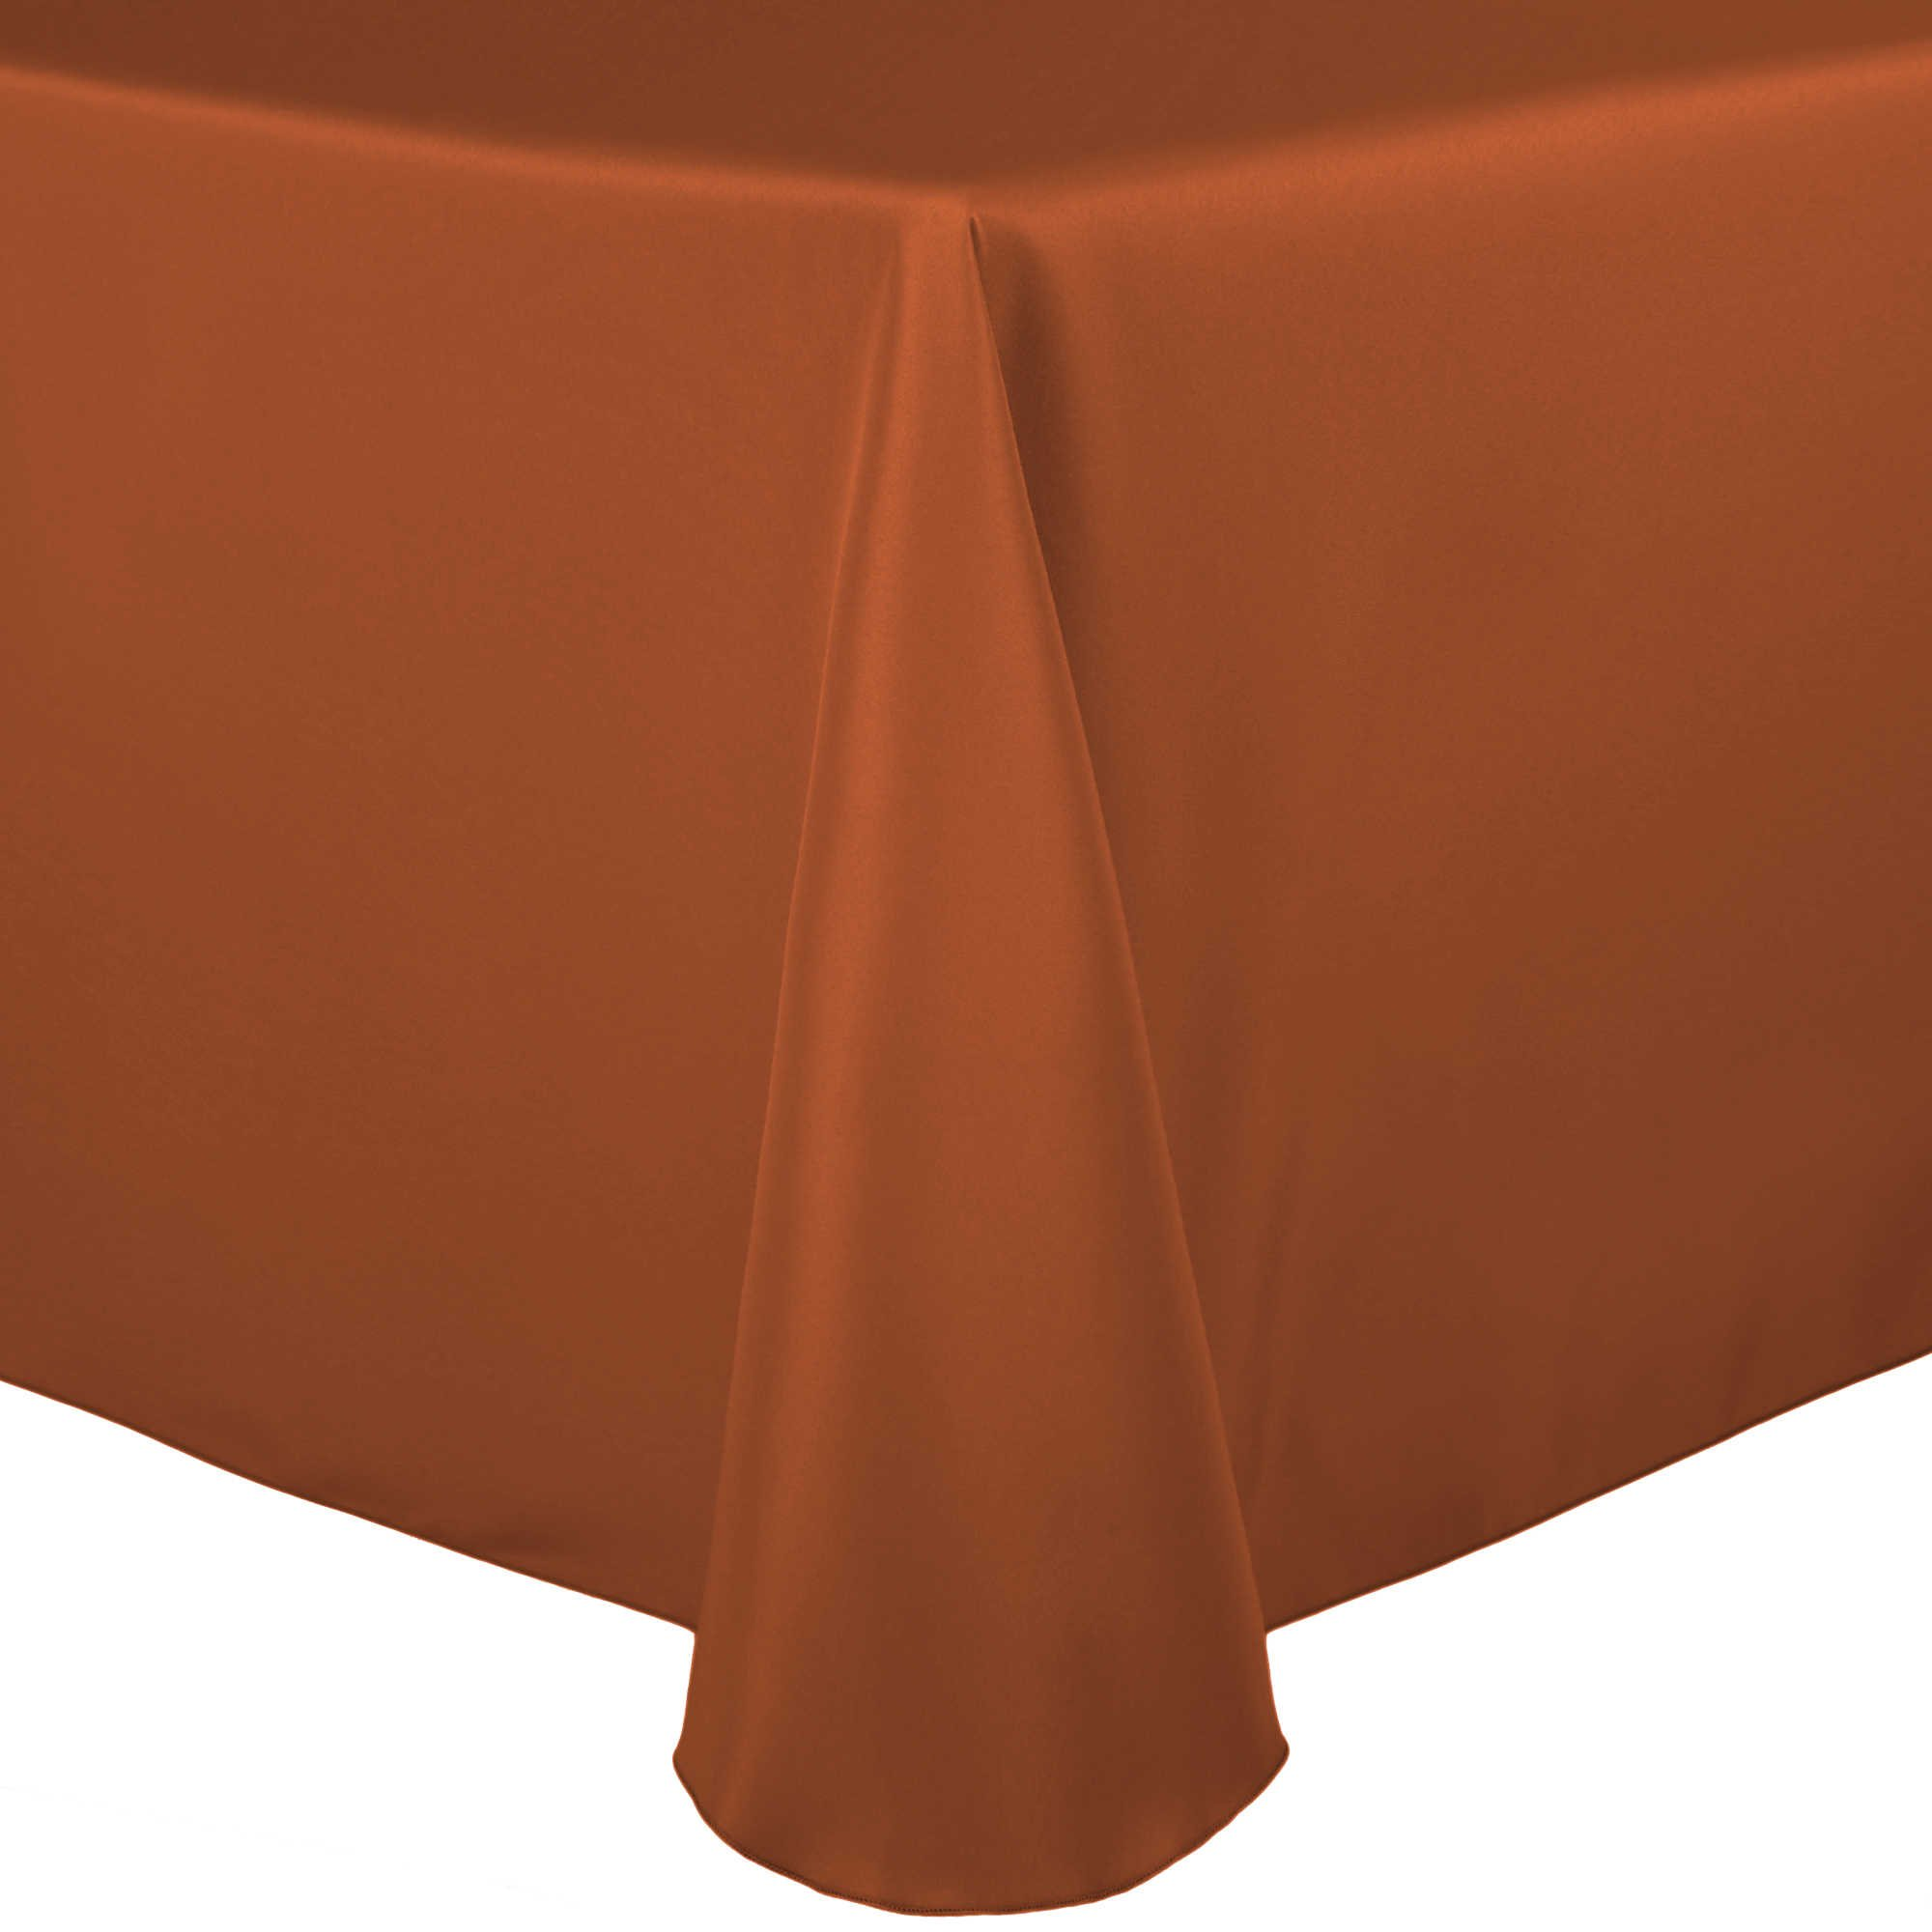 Ultimate Textile (20 Pack) 90 x 132-Inch Rectangular Polyester Linen Tablecloth with Rounded Corners - for Wedding, Restaurant or Banquet use, Burnt Orange by Ultimate Textile (Image #3)